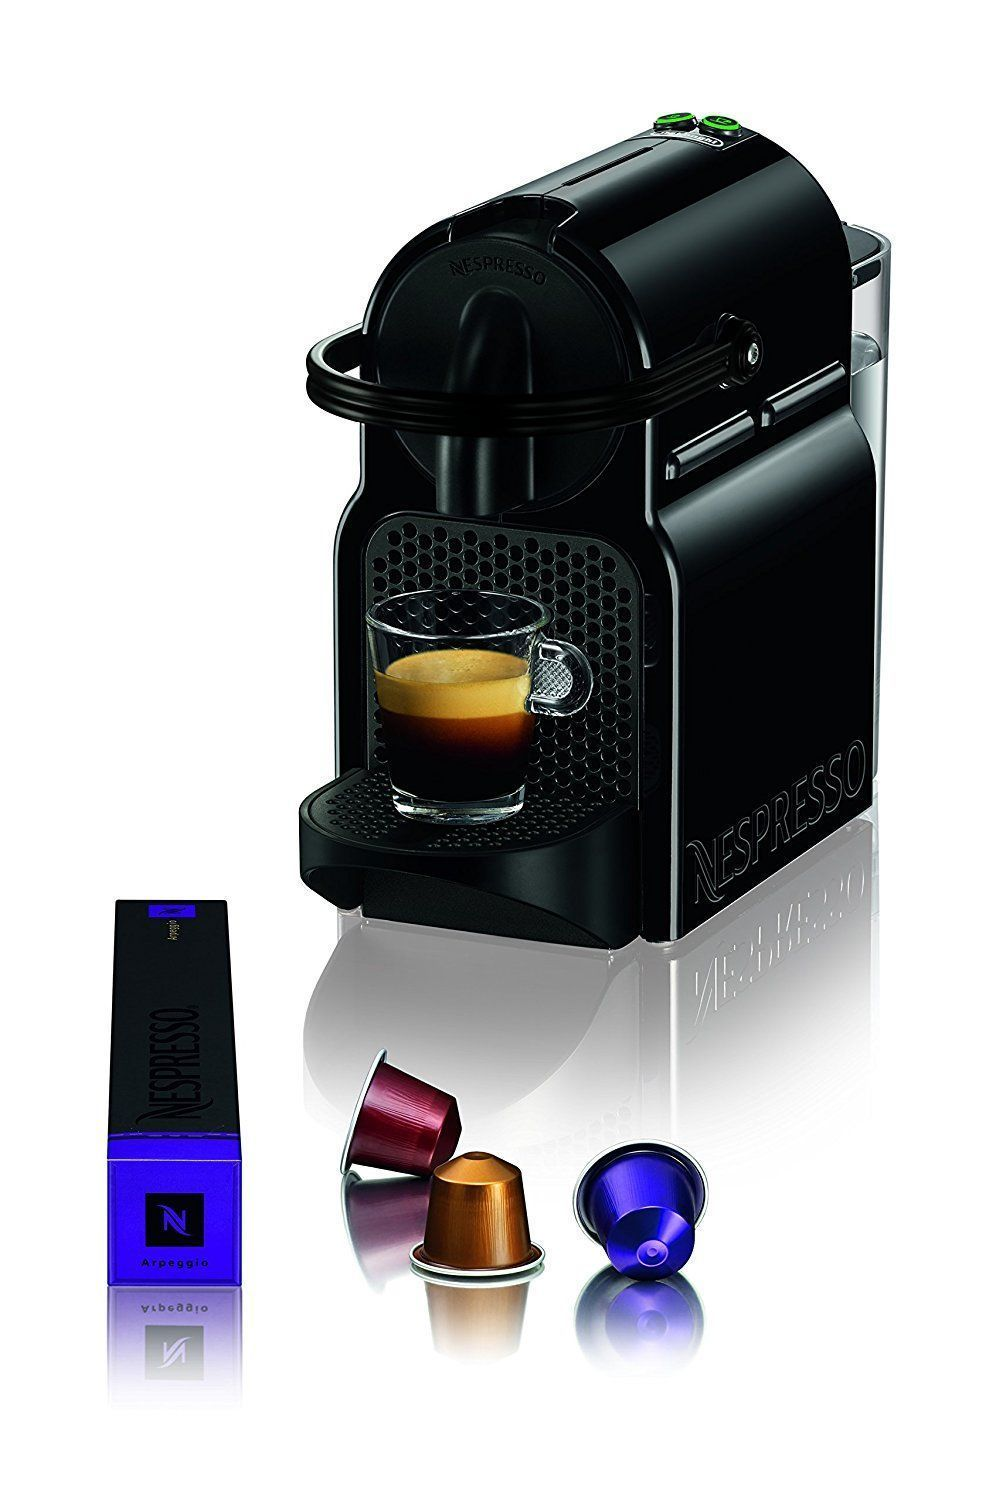 Amazon nespresso inissia espresso machine by deulonghi black